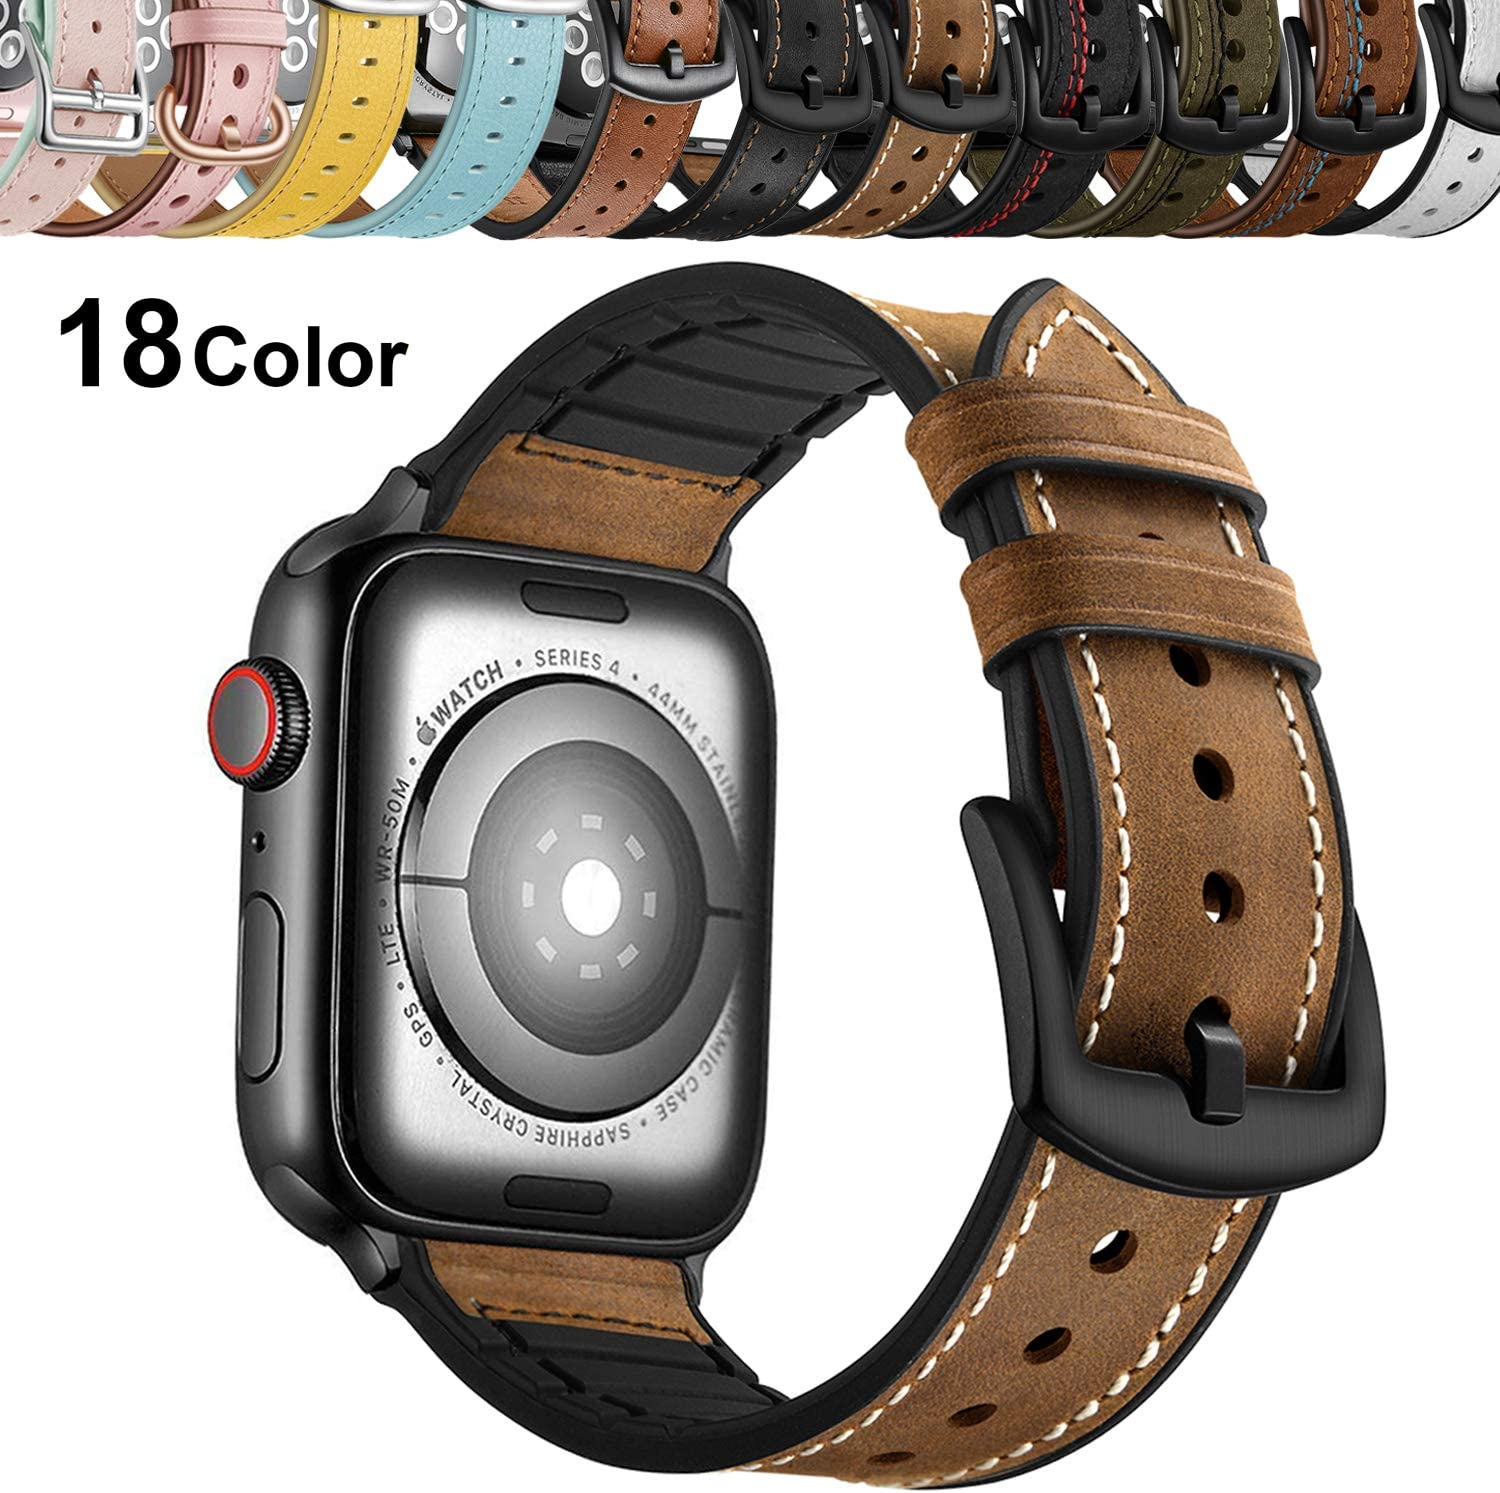 Qeei Correa Compatible with Apple Watch 42mm 44mm,Sport Hybrid Style Silicone Genuino Banda de Cuero con Seguro Metal Band Replacement for iWatch Series 5 & 4 3/2/1,Brown